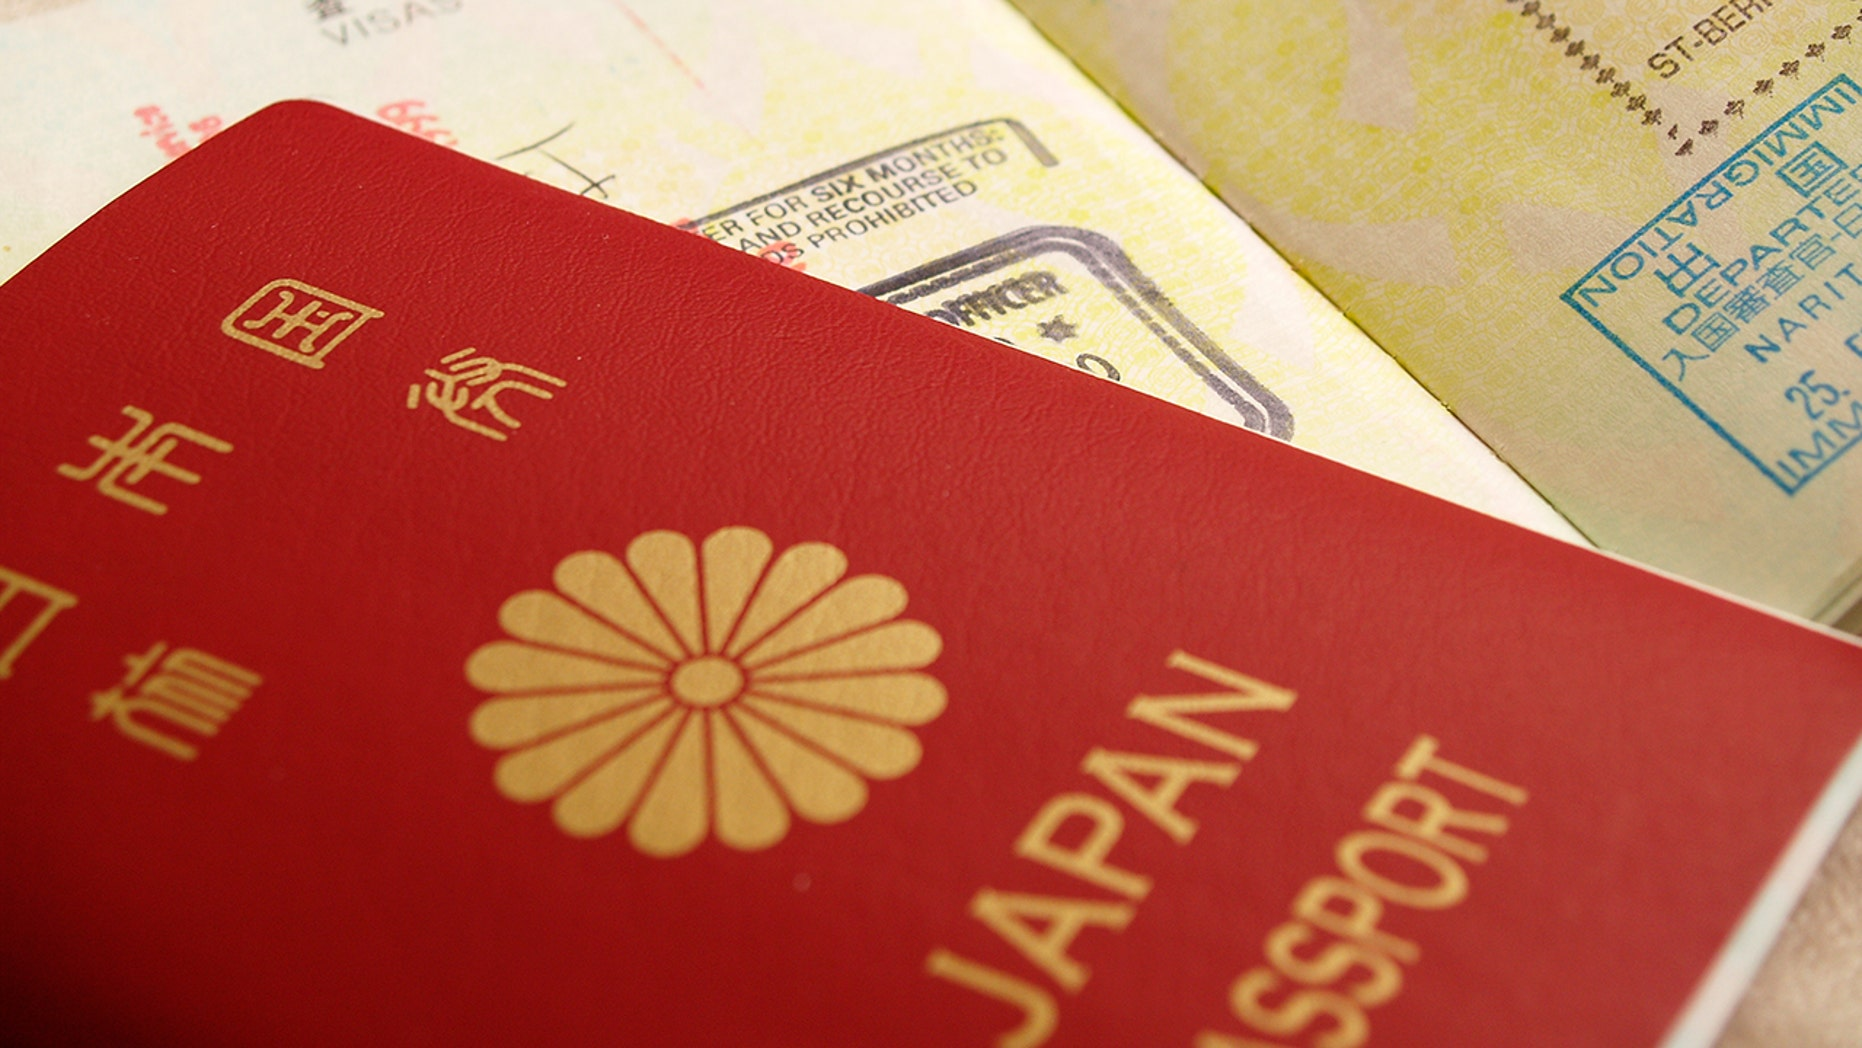 Japan now has visa-free access to Myanmar, granting passport-holders access to 190 countries.